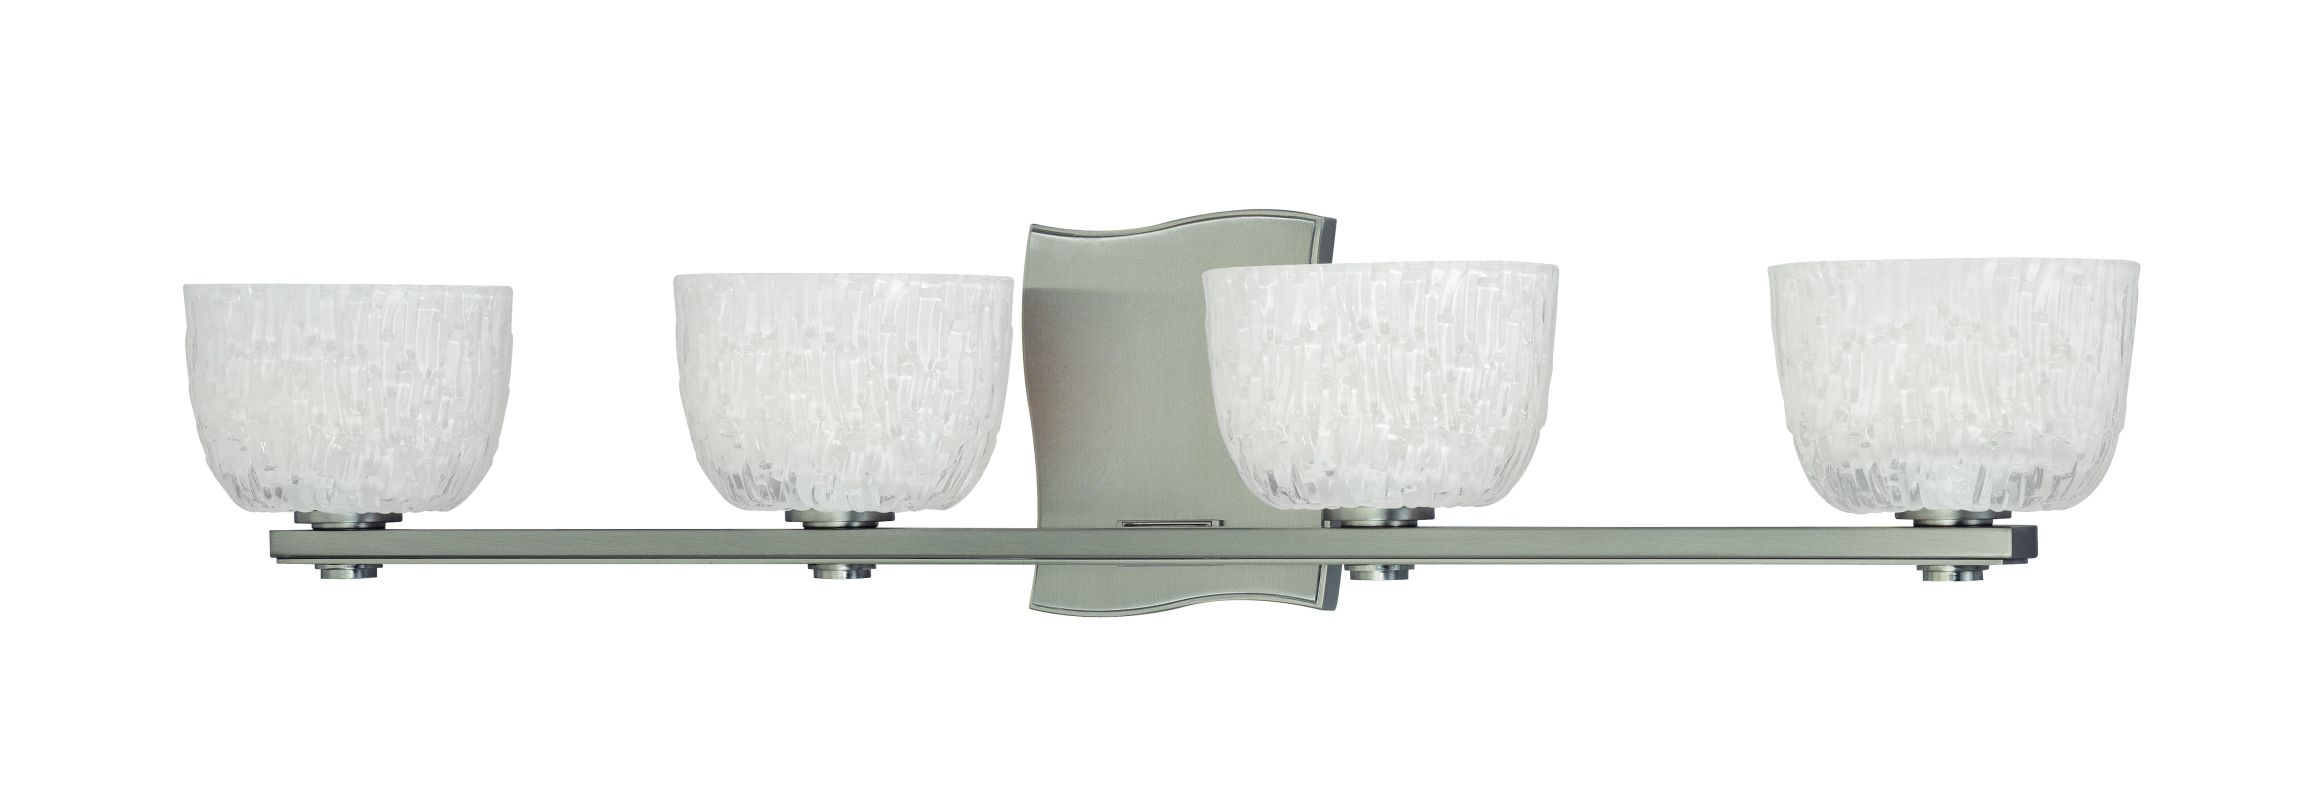 Hudson Valley Lighting 2664 Four Light Up Lighting Bath Vanity with Sale $482.00 ITEM#: 1737239 MODEL# :2664-SN UPC#: 806134123529 :